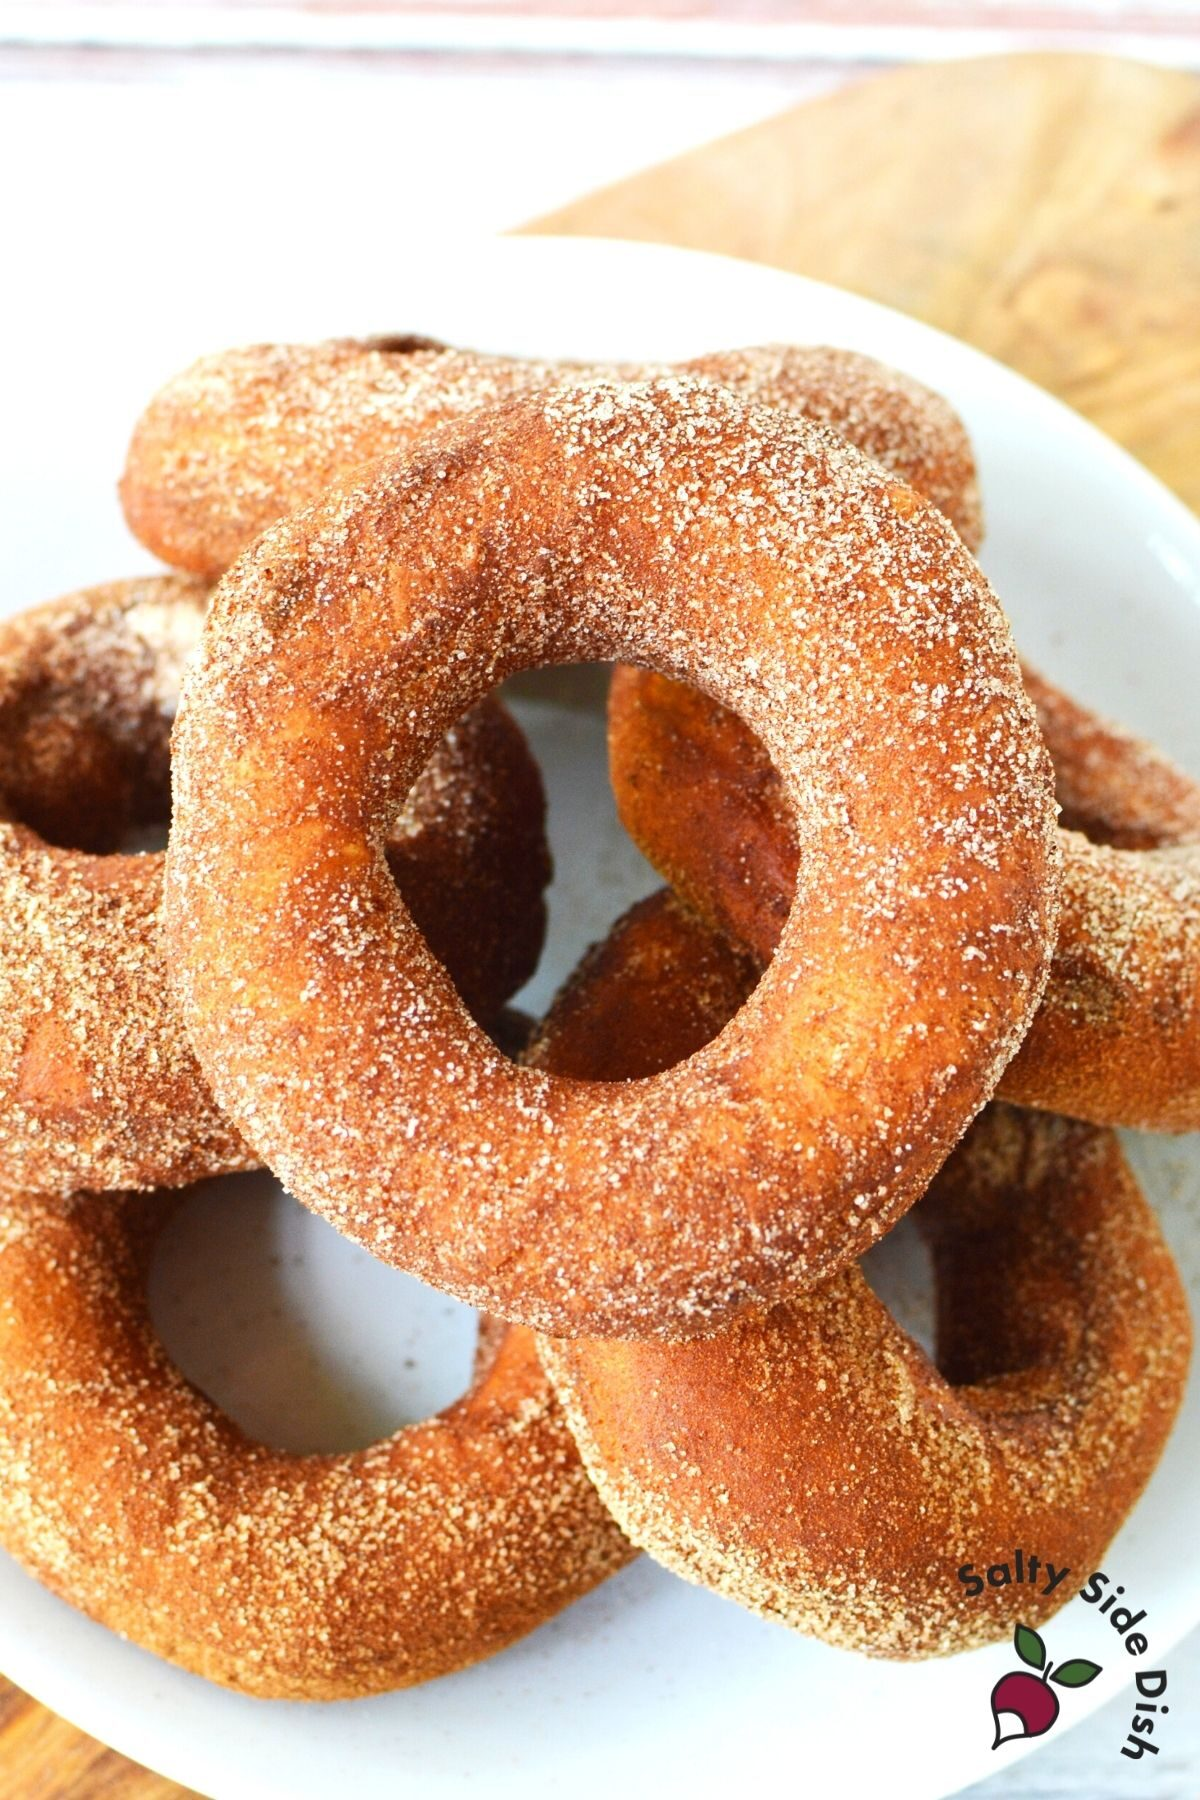 white plate piled high with cinnamon sugared donuts